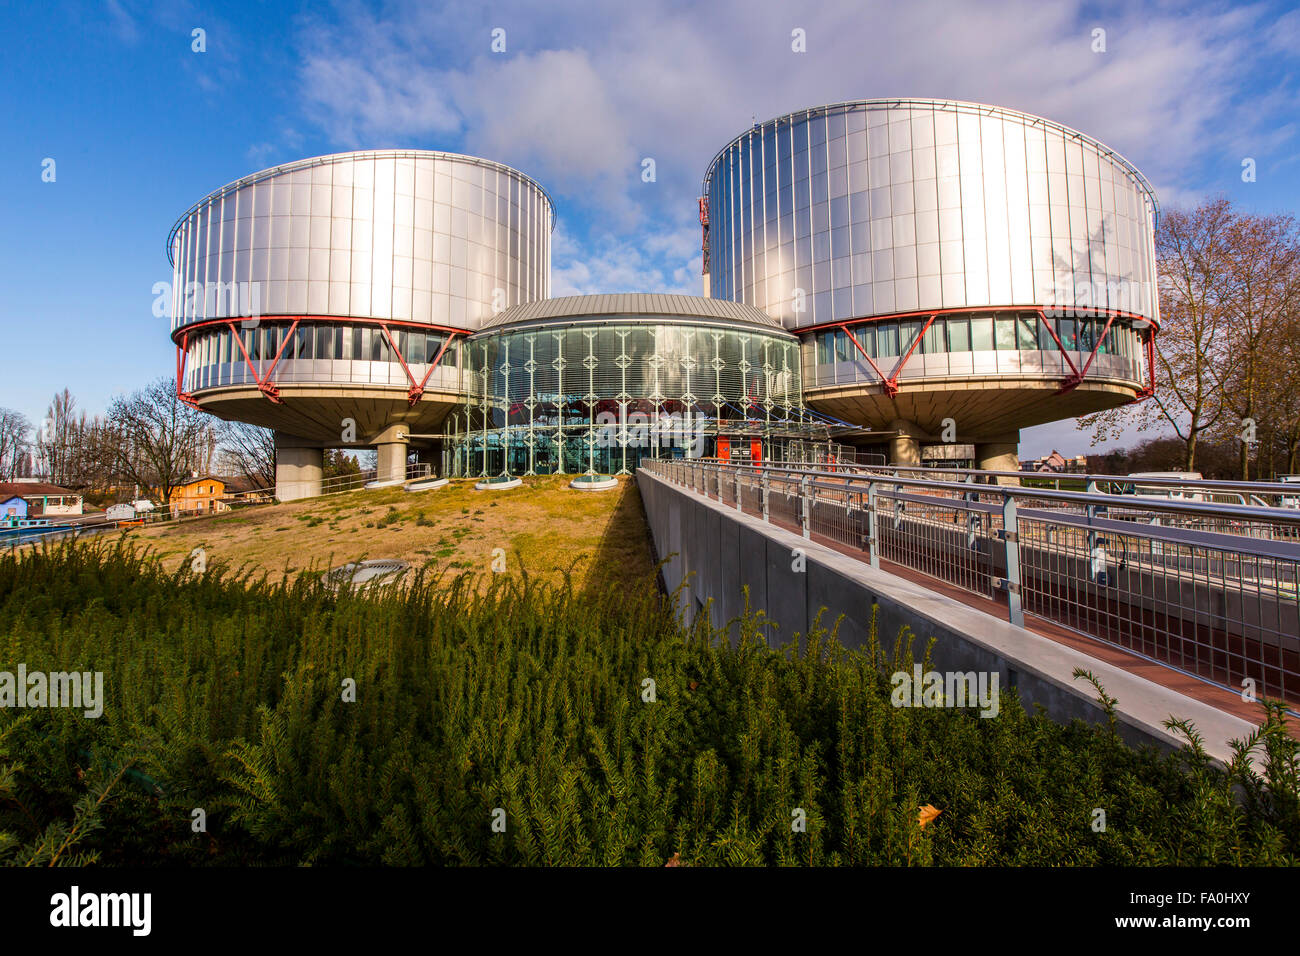 Building of the European Court of Human Rights in Strasbourg, Alsace, France - Stock Image